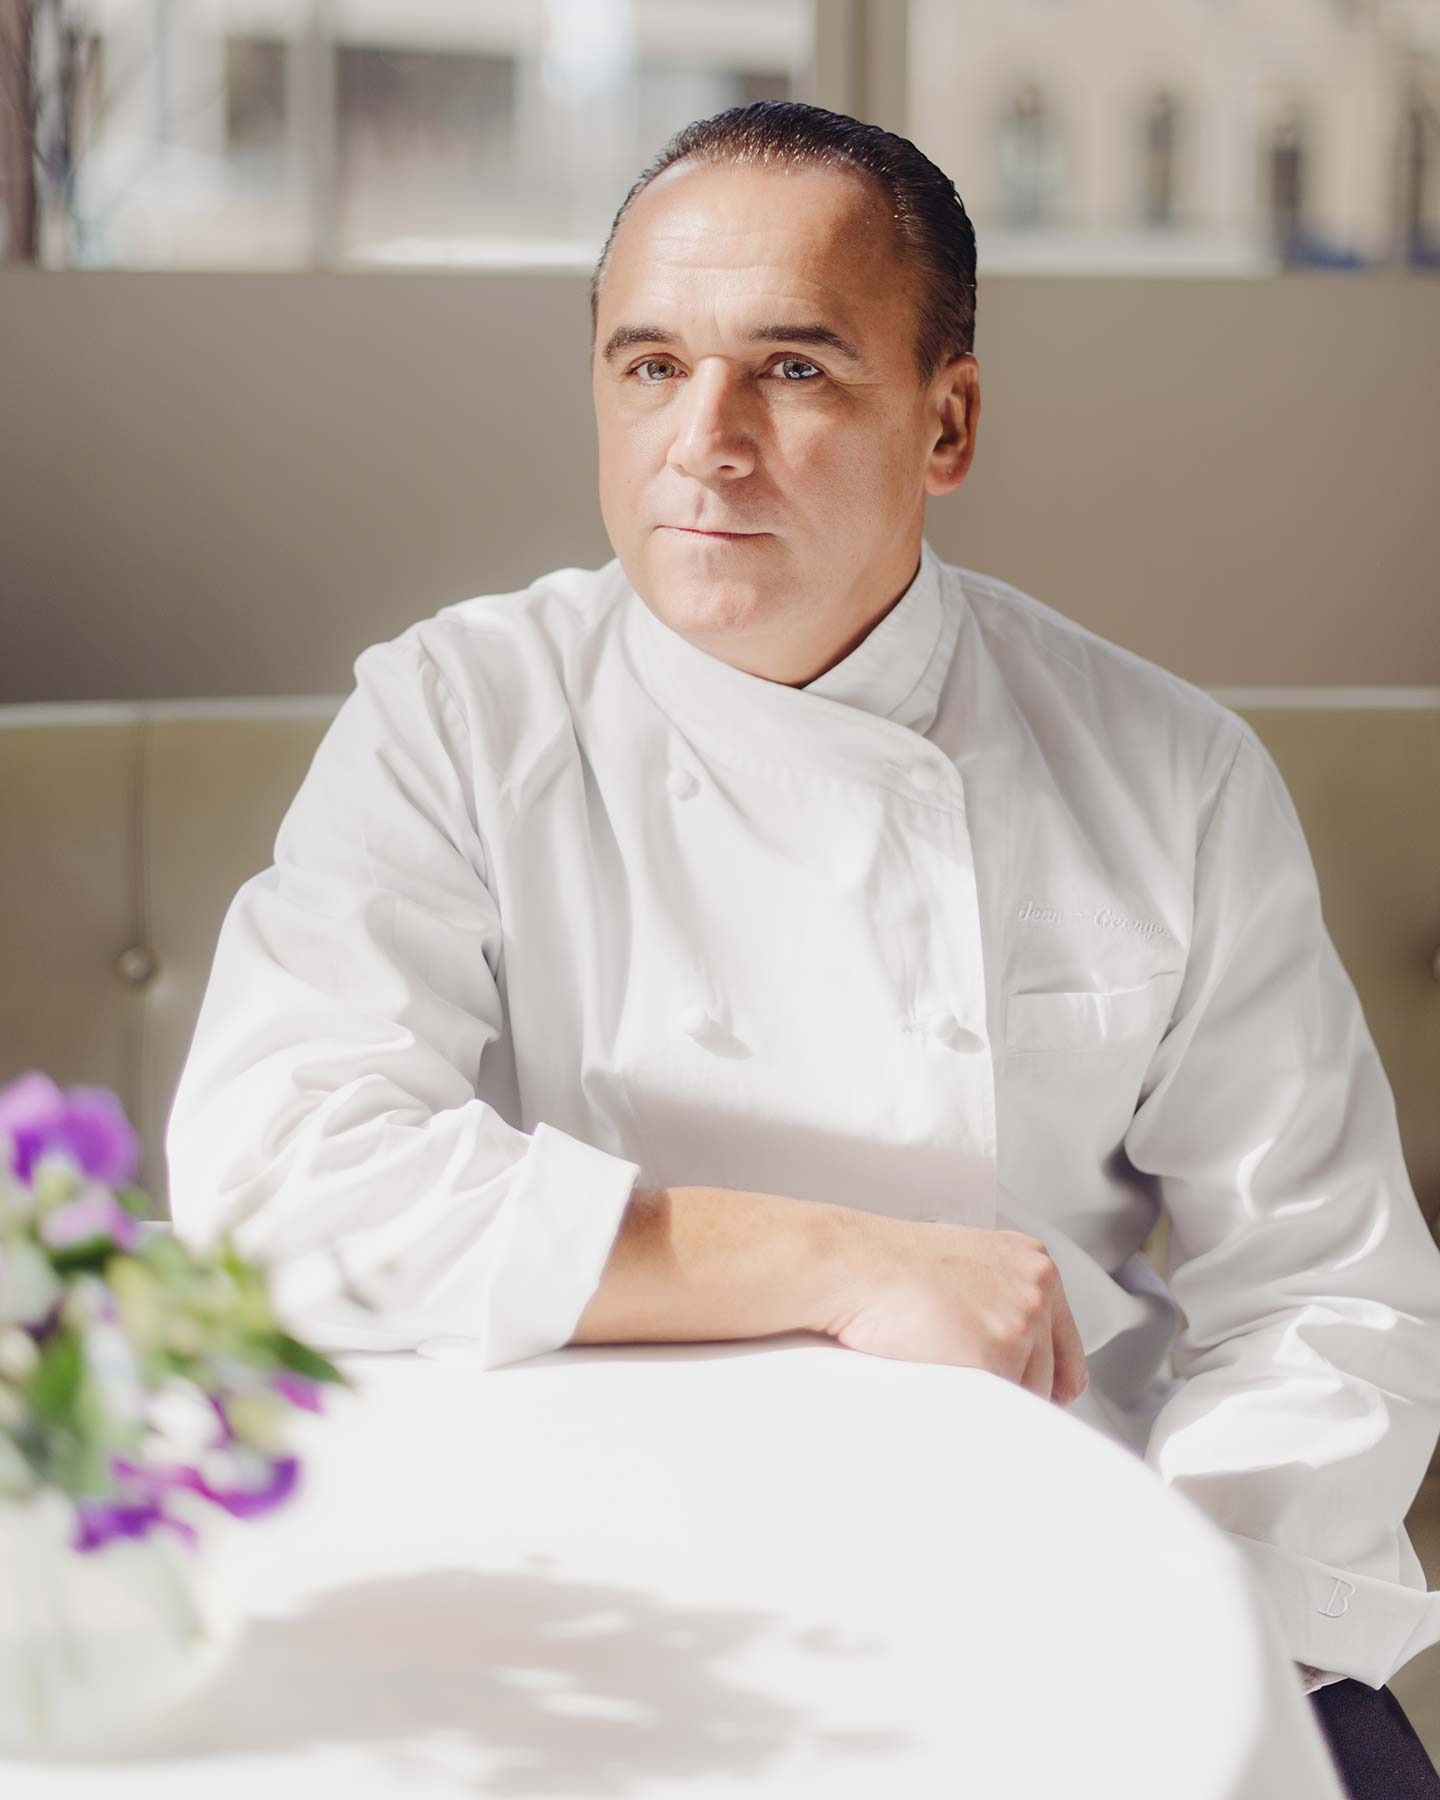 M. Cooper — Chef Jean-Georges Vongerichten / New York Magazine